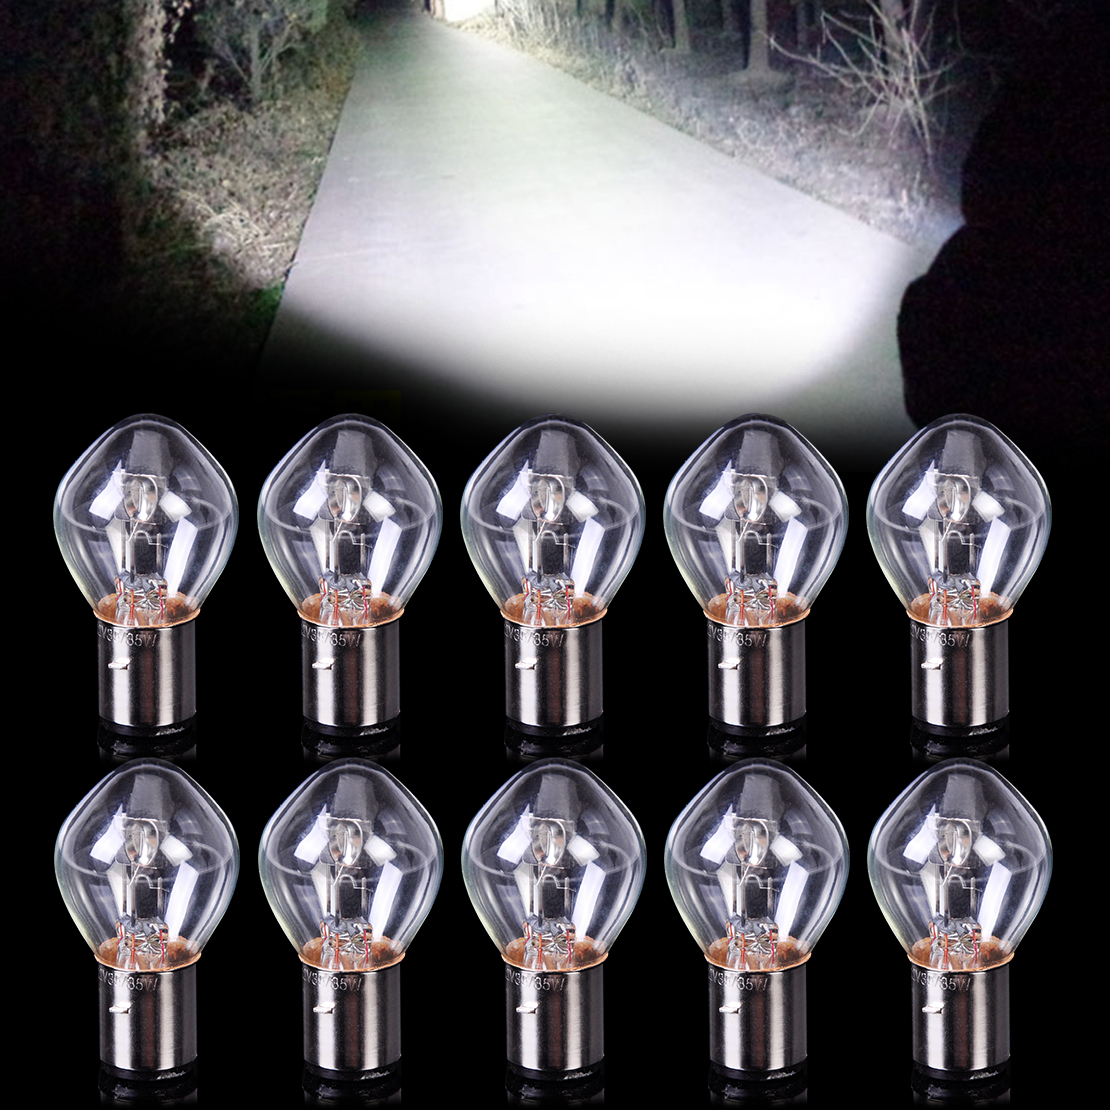 CITALL 10pcs Motorcycle Head Light Headlight Bulb 12V 35W B35 BA20D fit for Chinese GY6 Scooter Moped ATV